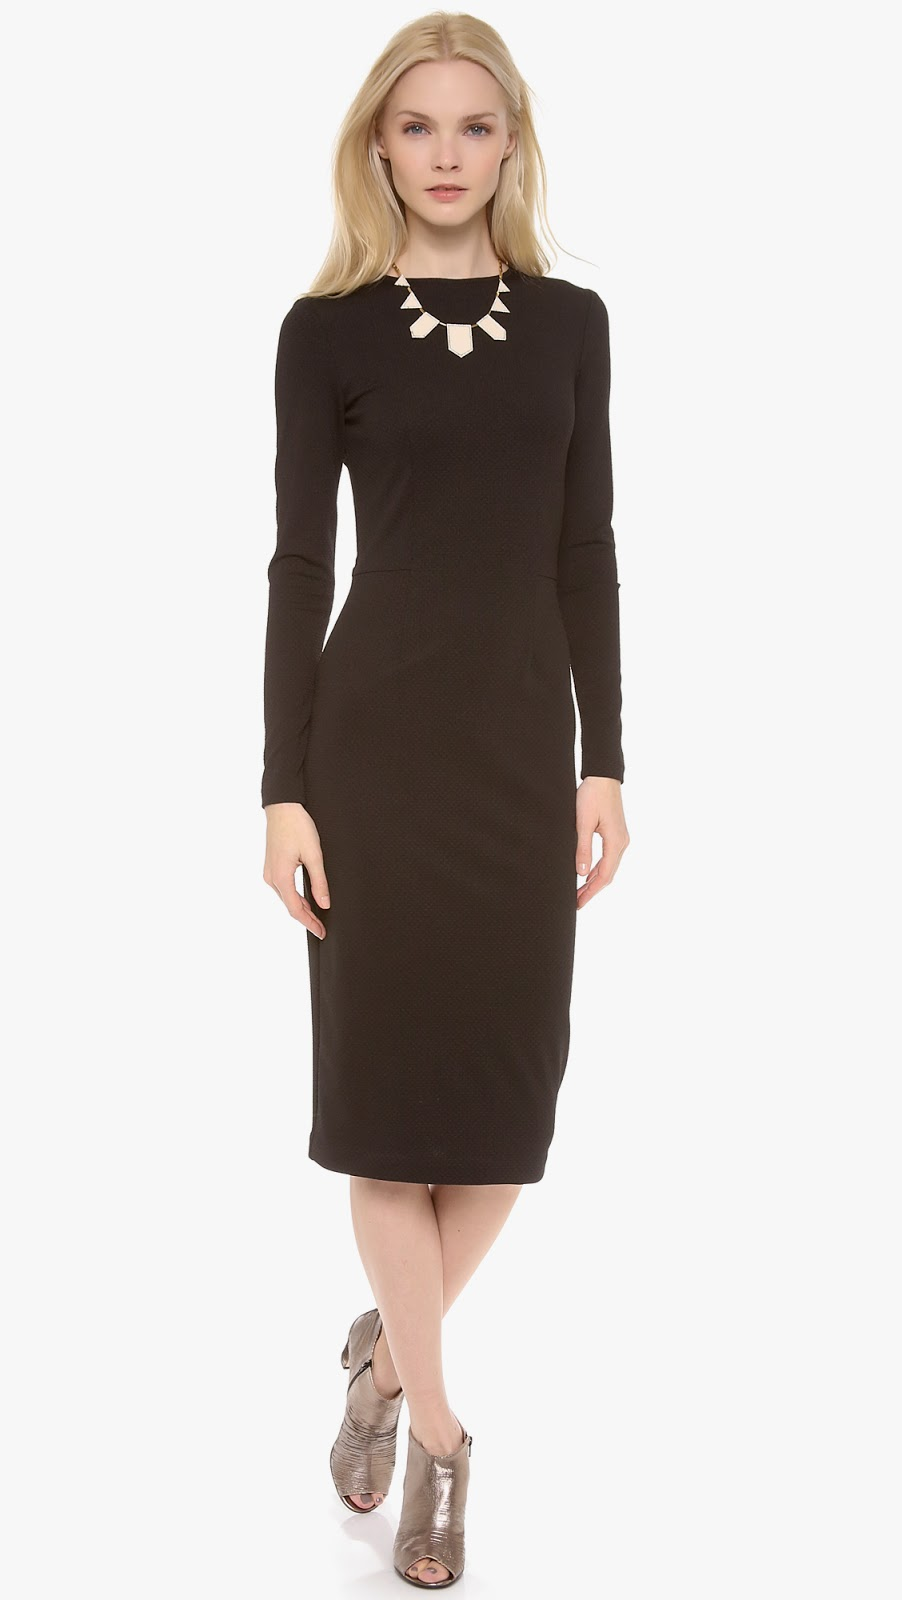 Modest body con fitted midi dress with sleeves | Shop Mode-sty #nolayering tznius tzniut jewish orthodox muslim islamic pentecostal mormon lds evangelical christian apostolic mission clothes Jerusalem trip hijab fashion modest muslimah hijabista